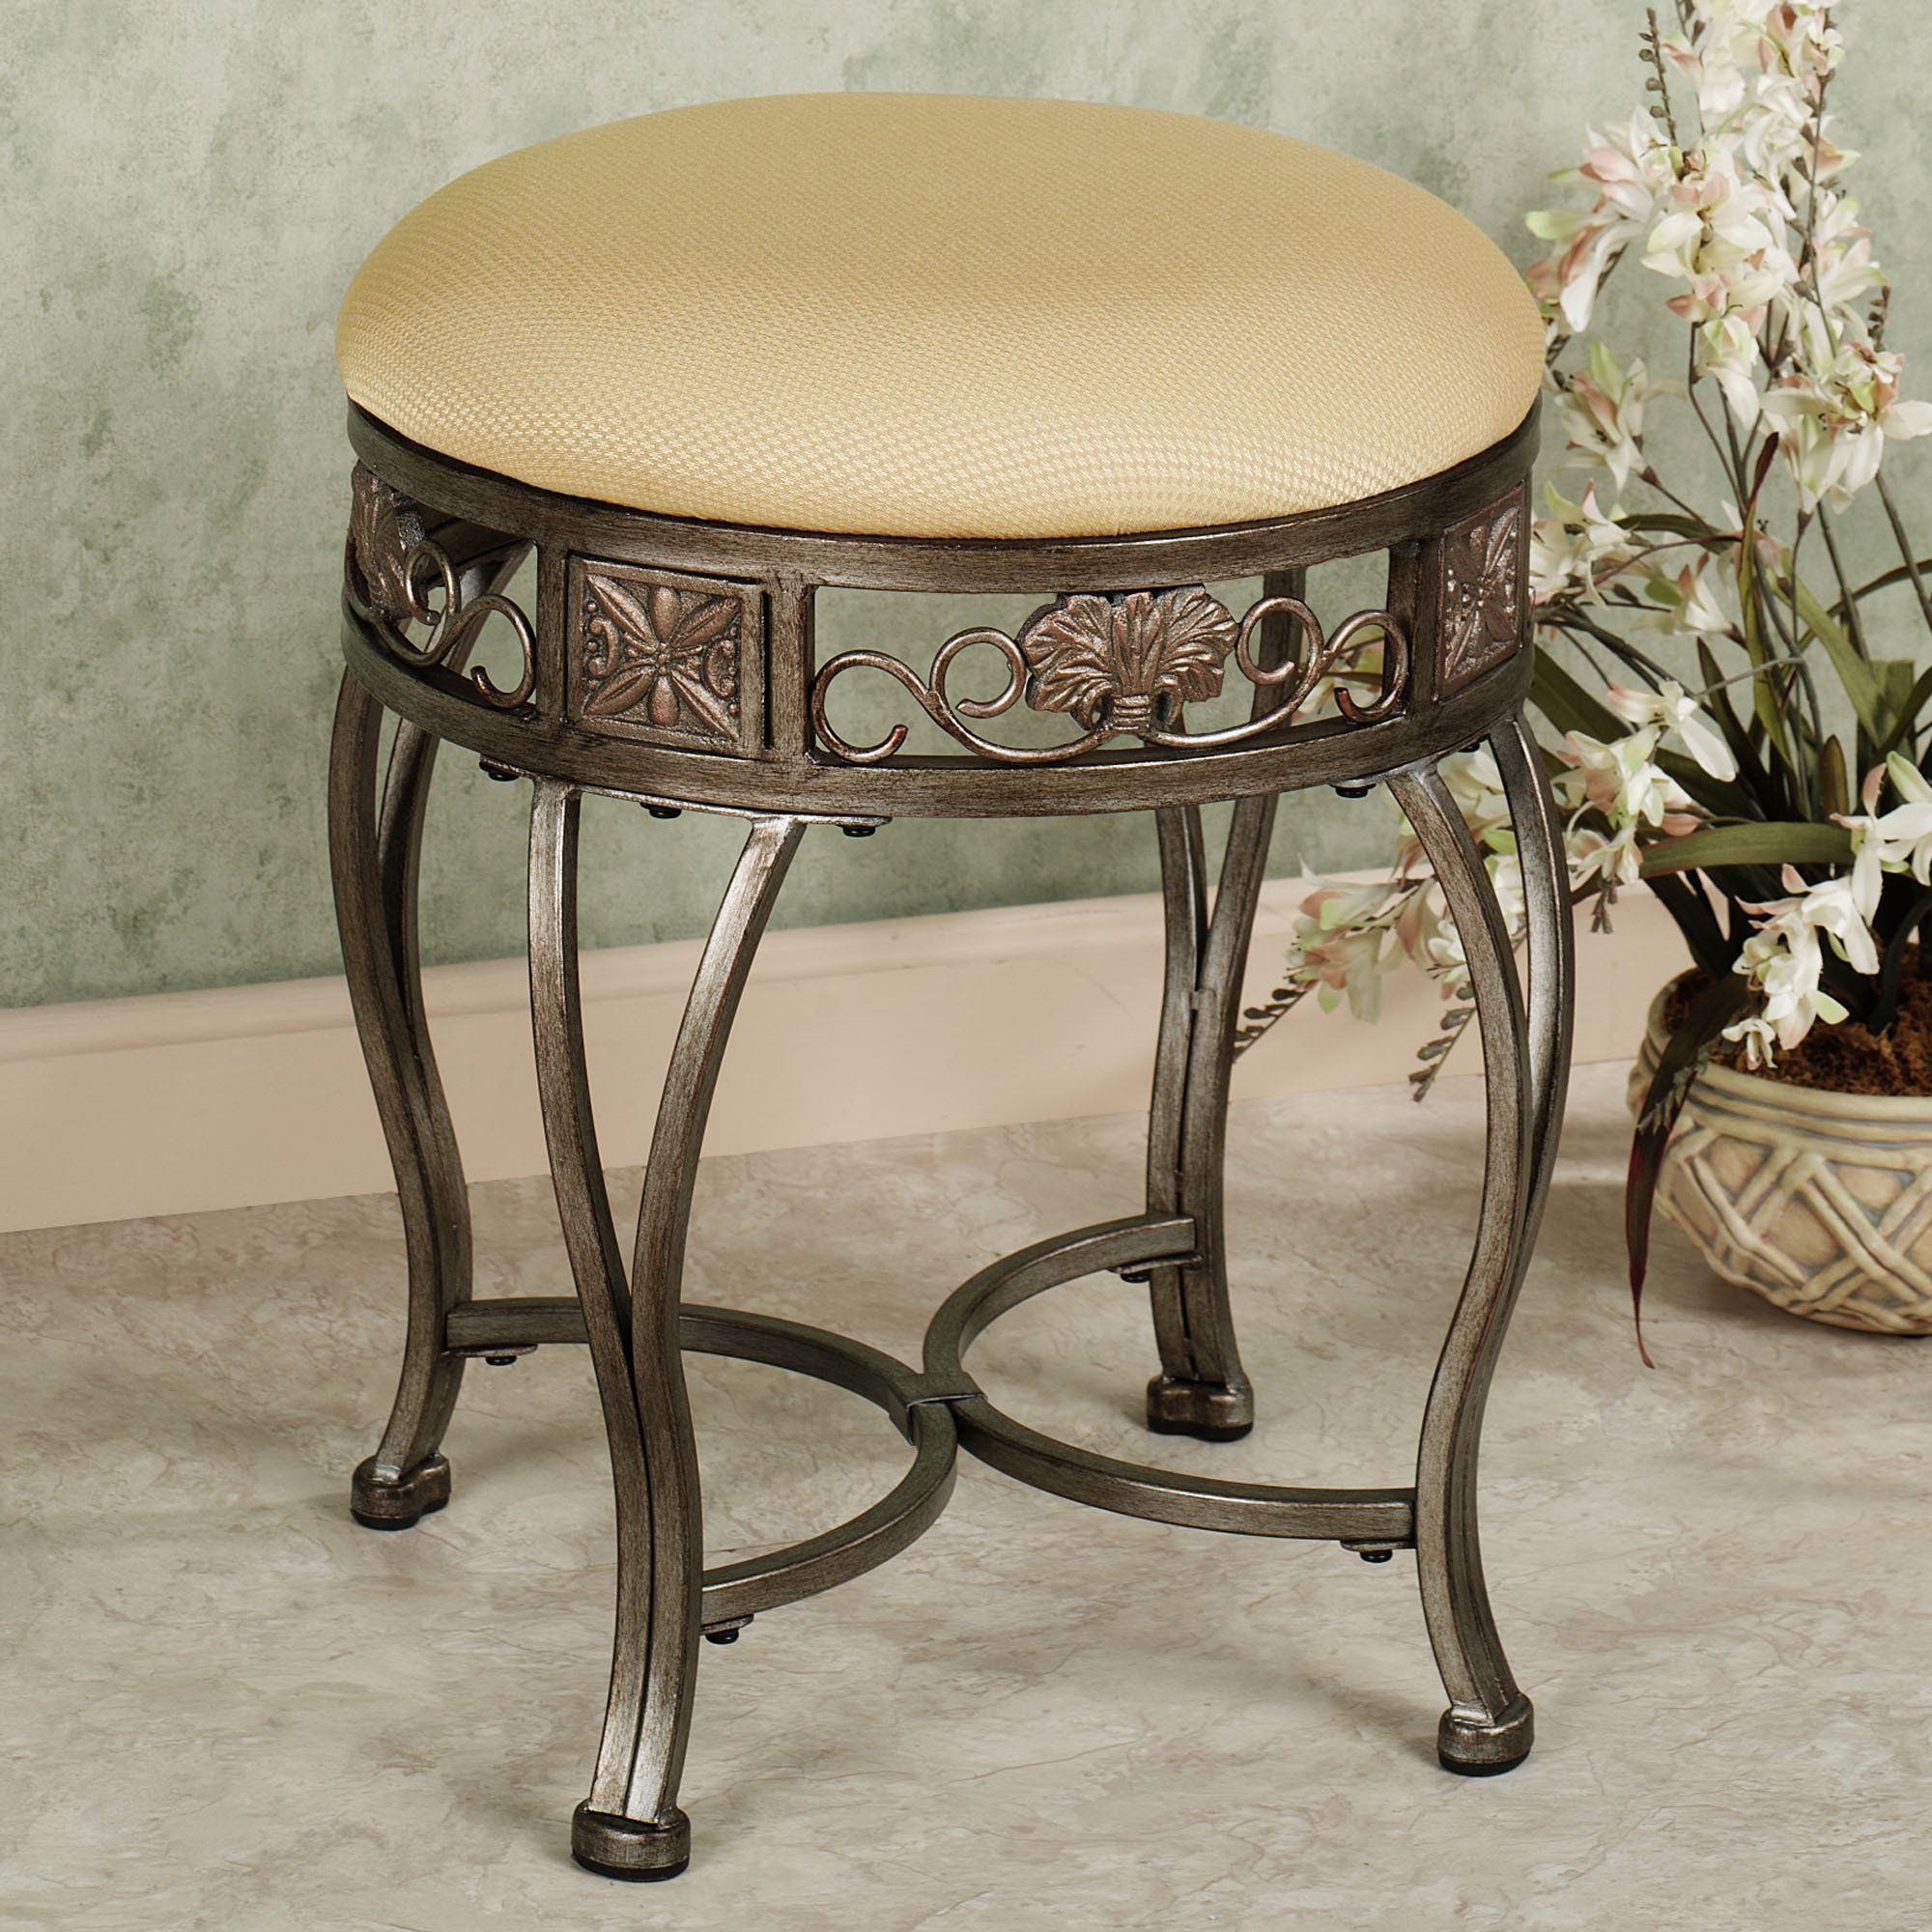 Contemporary Vanity Stool For Bathroom With Round Shape And Vintage Curve Legs & Sculpture of Rolling Vanity Stool | Furniture | Pinterest | Vanity ... islam-shia.org